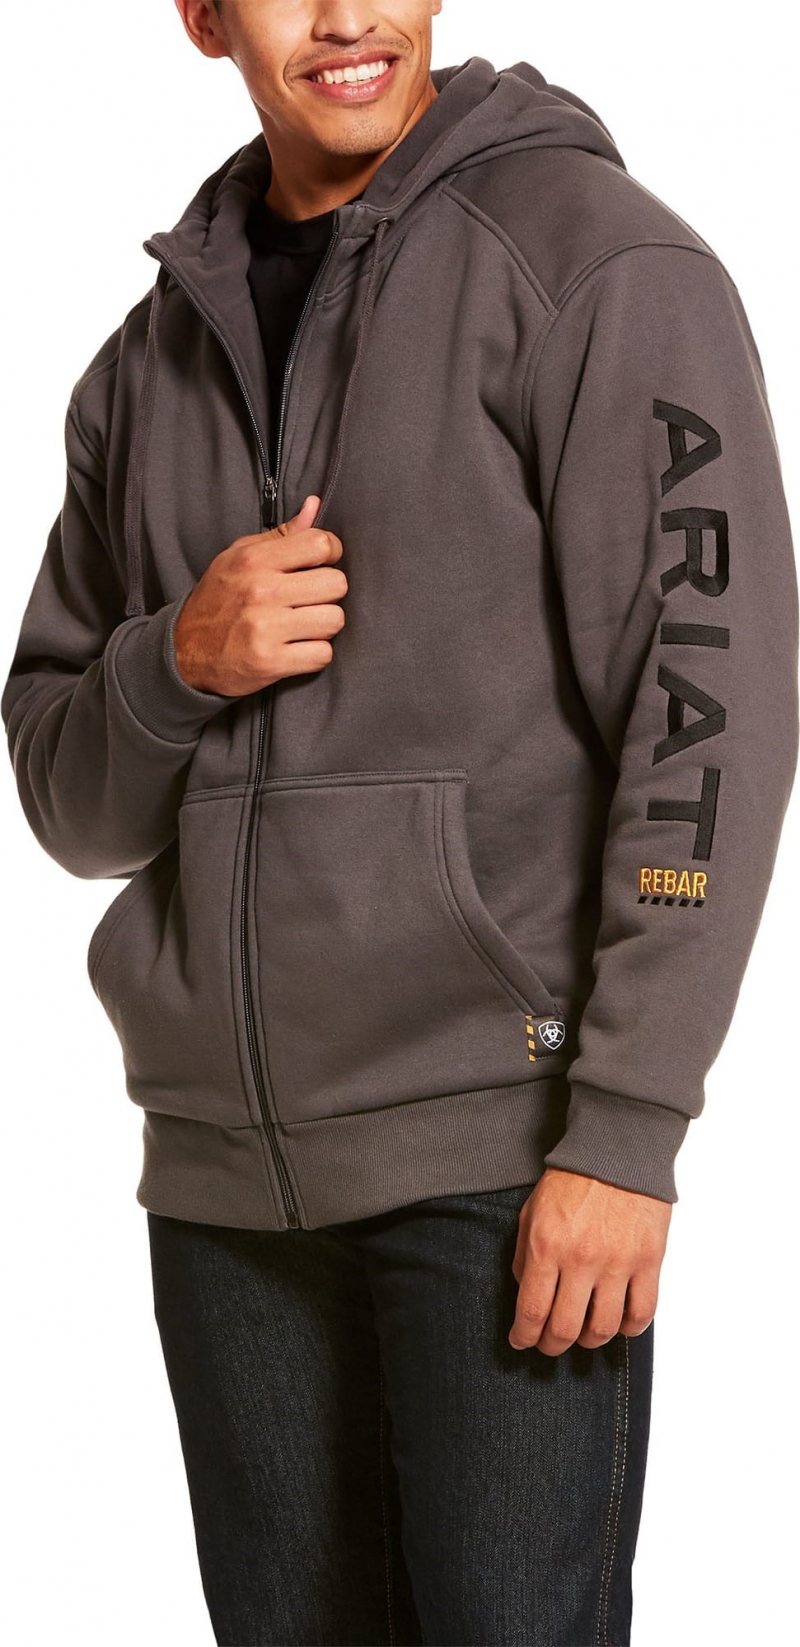 Ariat Rebar All-Weather Full Zip Hooded Sweatshirt - Rebar Grey